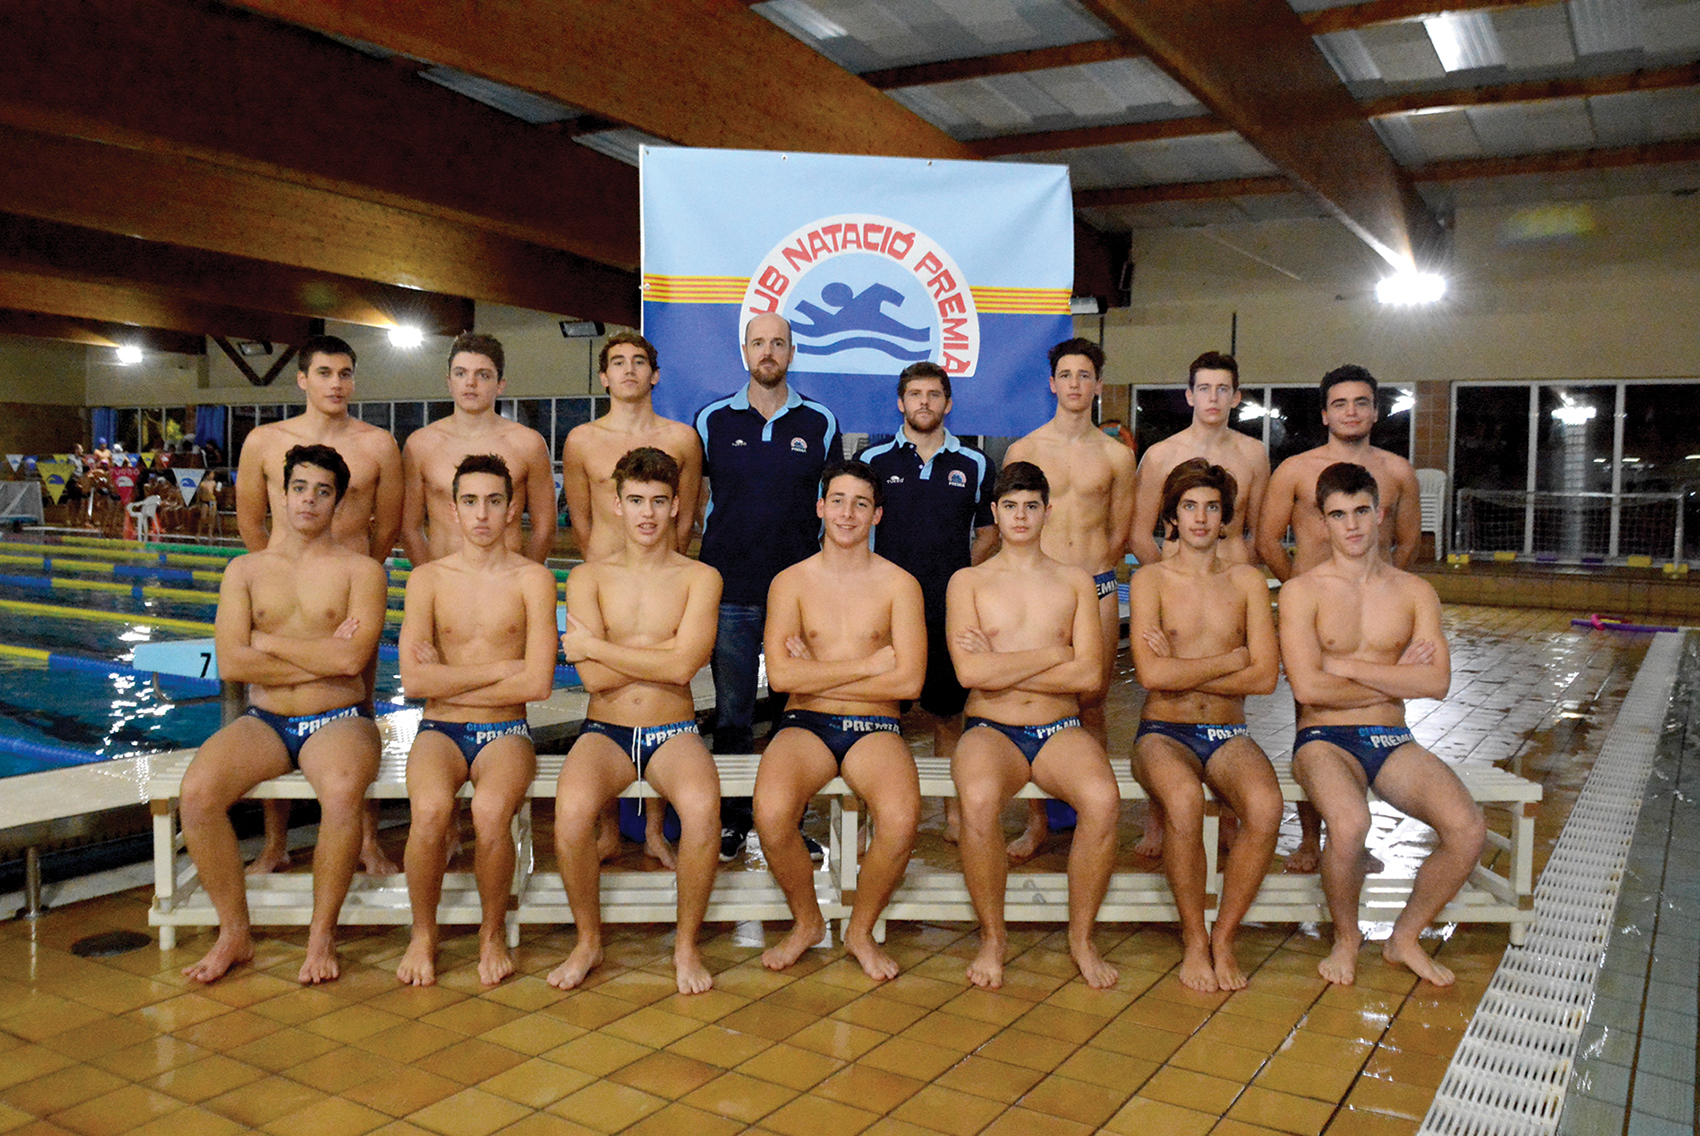 http://cnpremia.cat/new-web/wp-content/uploads/2018/03/waterpolo-juvenil-2018.jpg